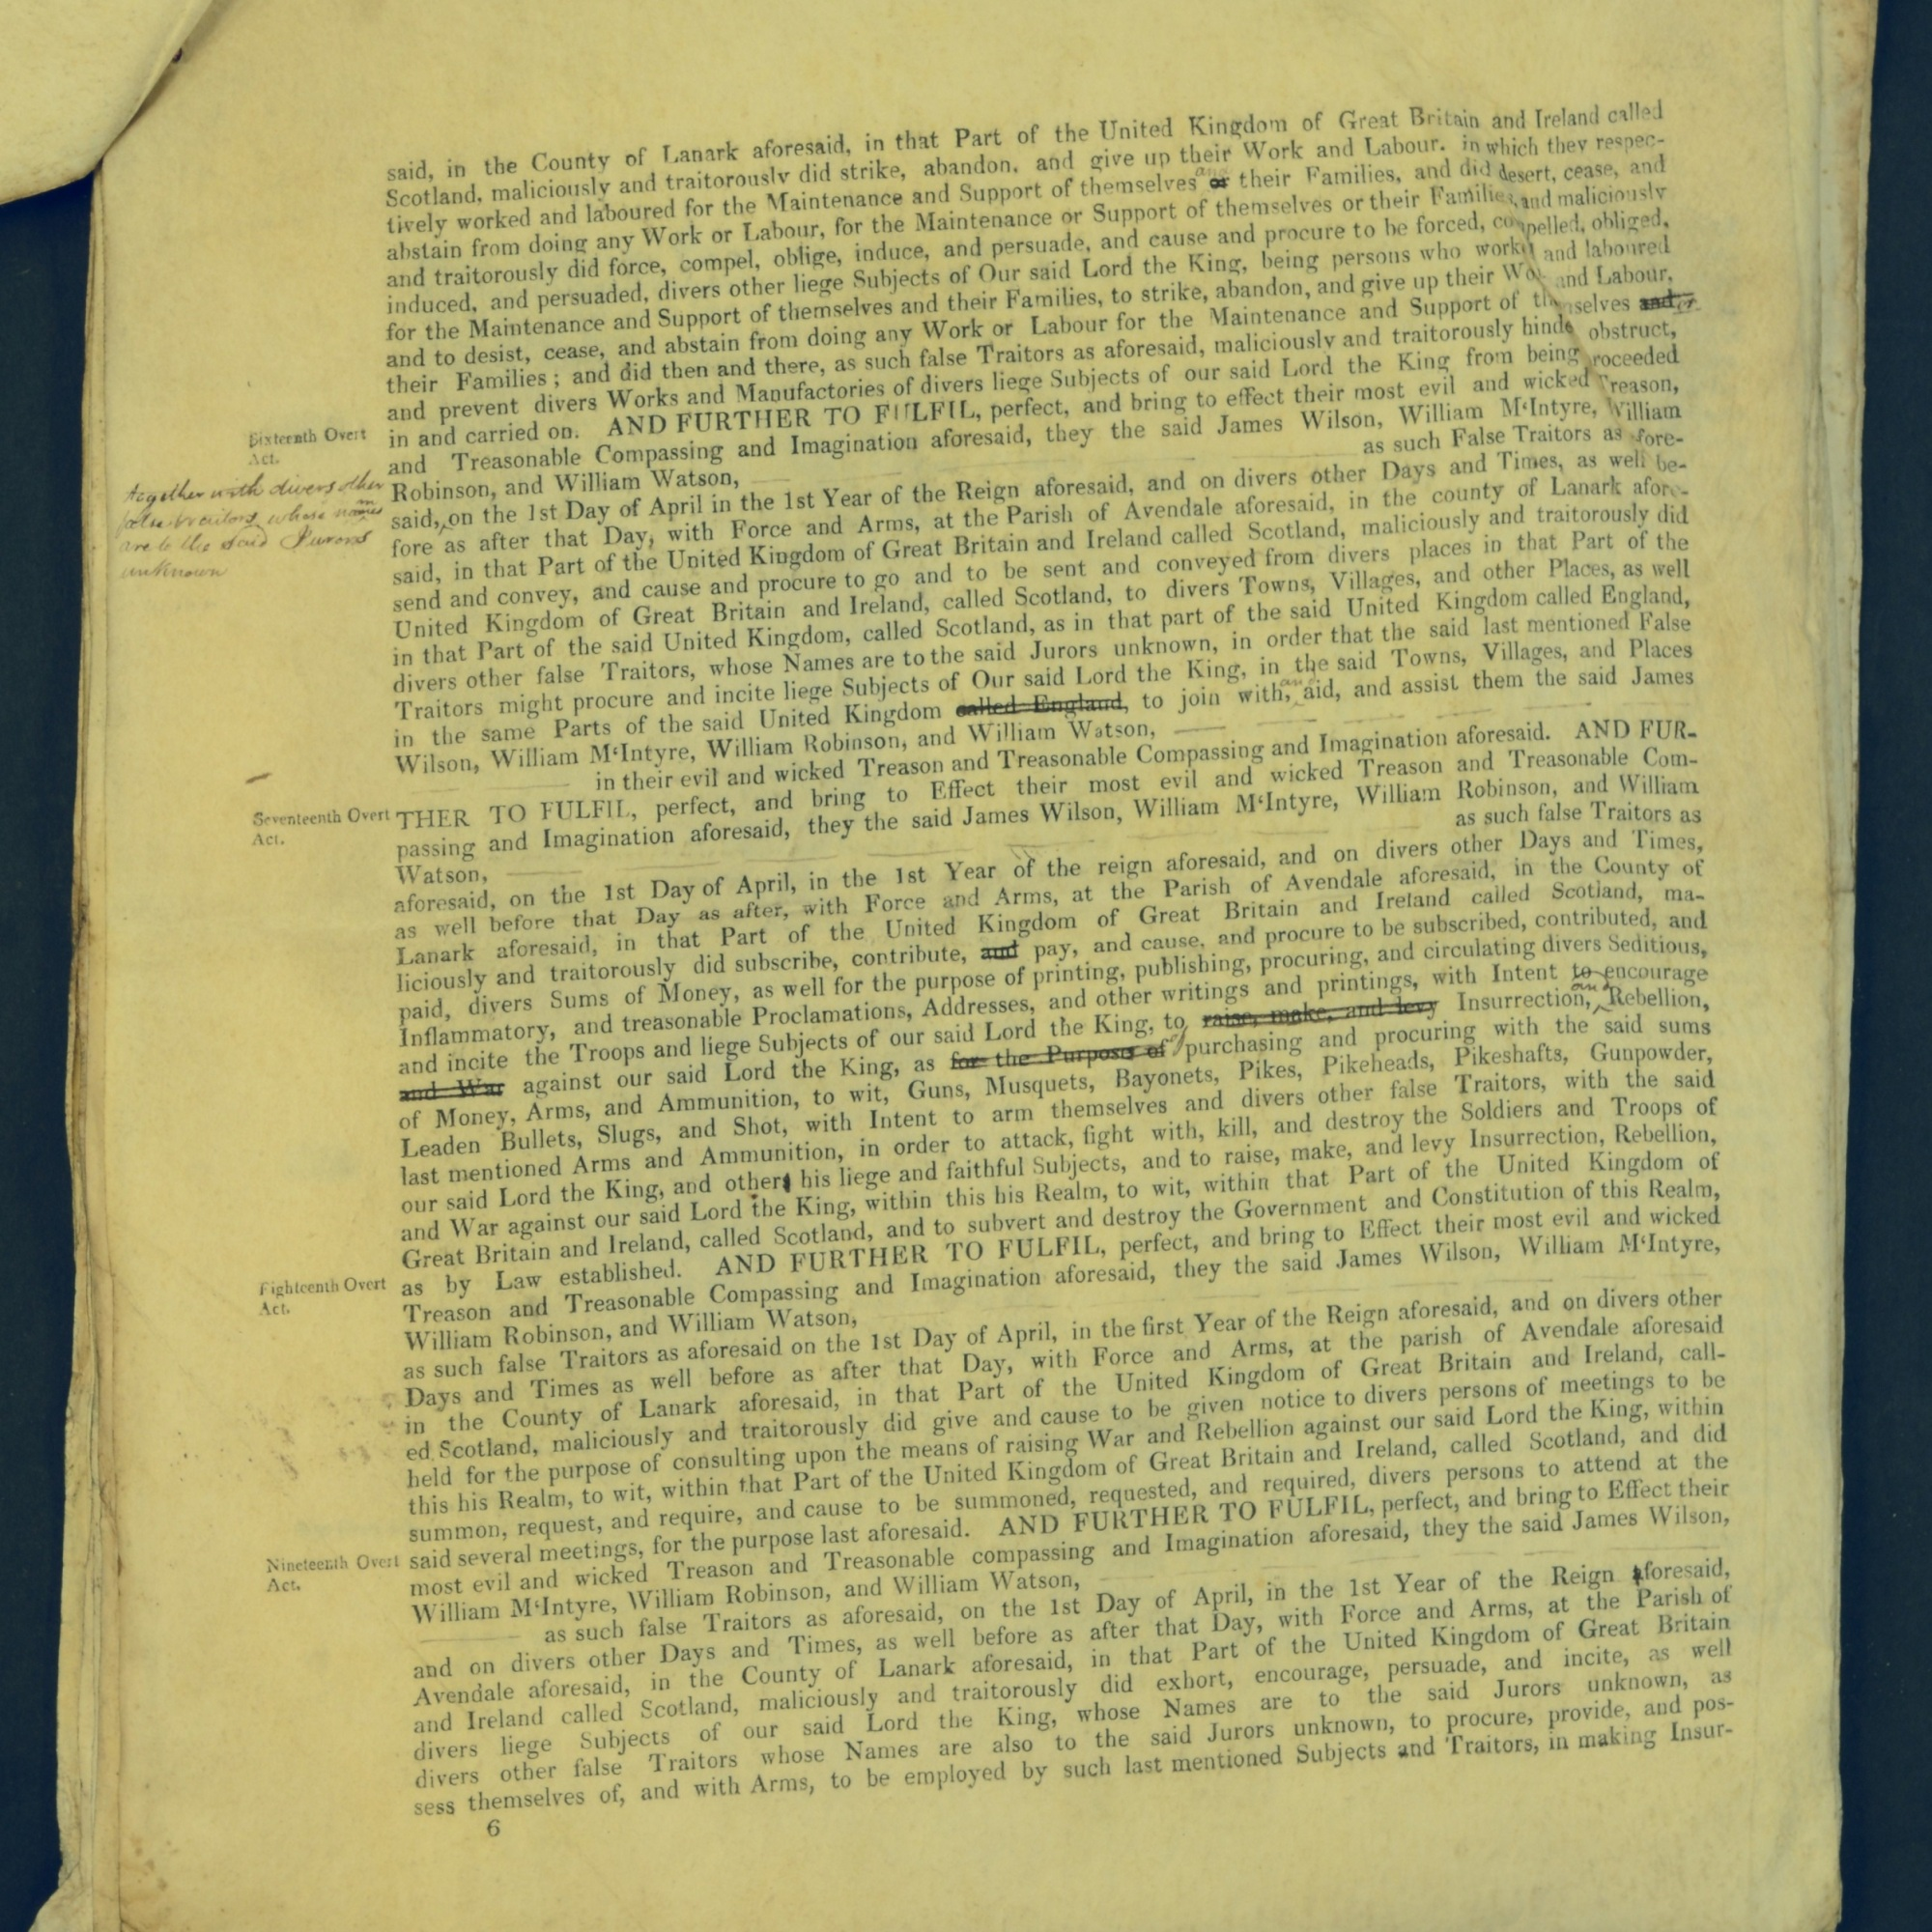 Treason Trials for the County of Lanark, the Strathaven Case. True bills found against four men, James Wilson, William McIntyre, William Robinson and William Watson. National Records of Scotland, Crown copyright, JC21/3/4 p6